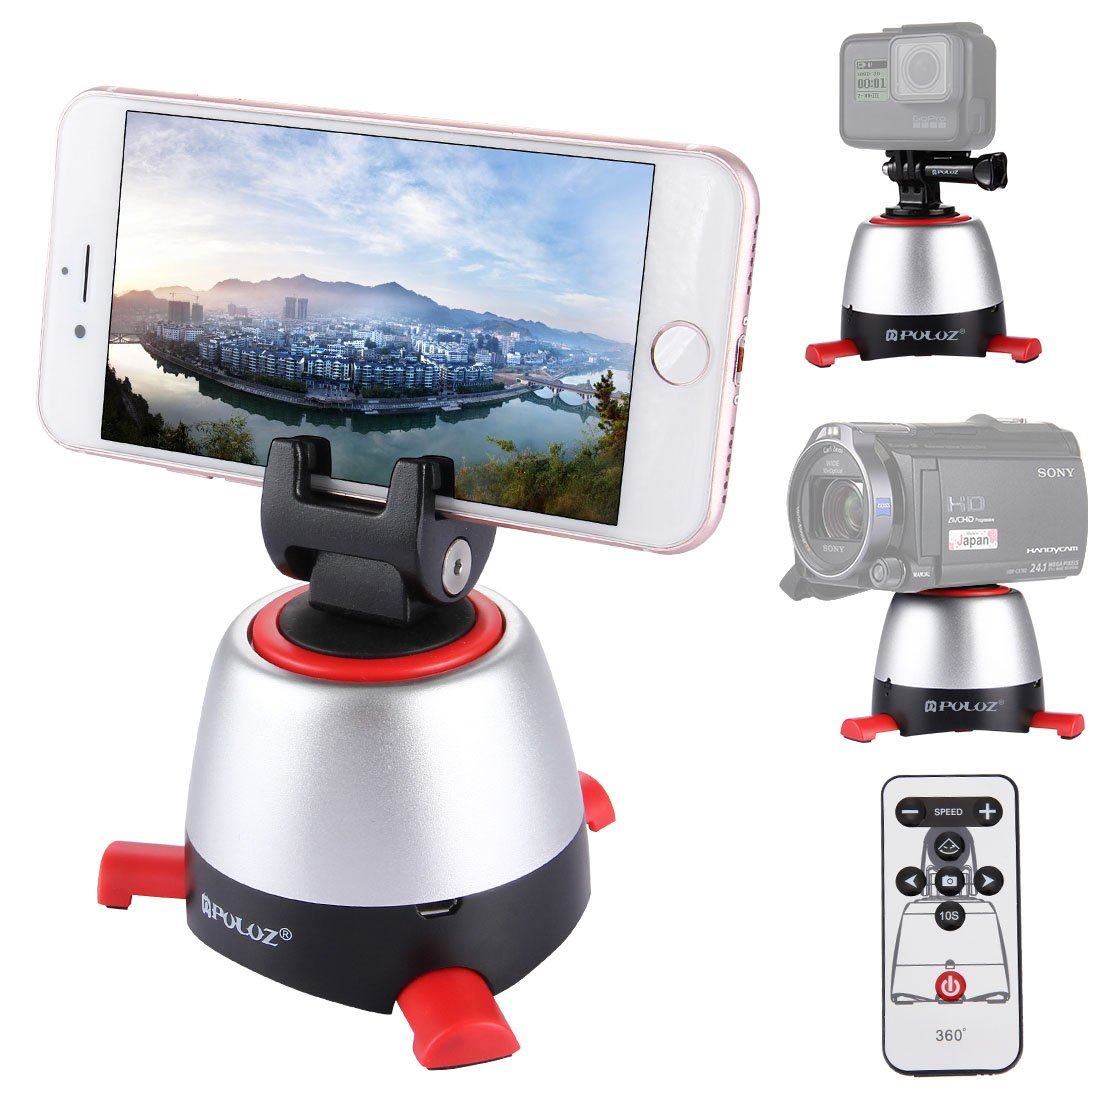 Panoramic Self-timer, PULUZ Electronic Intelligent 360 Degree Rotation Tripod Head with IR Remote Controller & Build-in Bluetooth for Most of Smartphones & Cameras Max load: 1kg/2.2lb